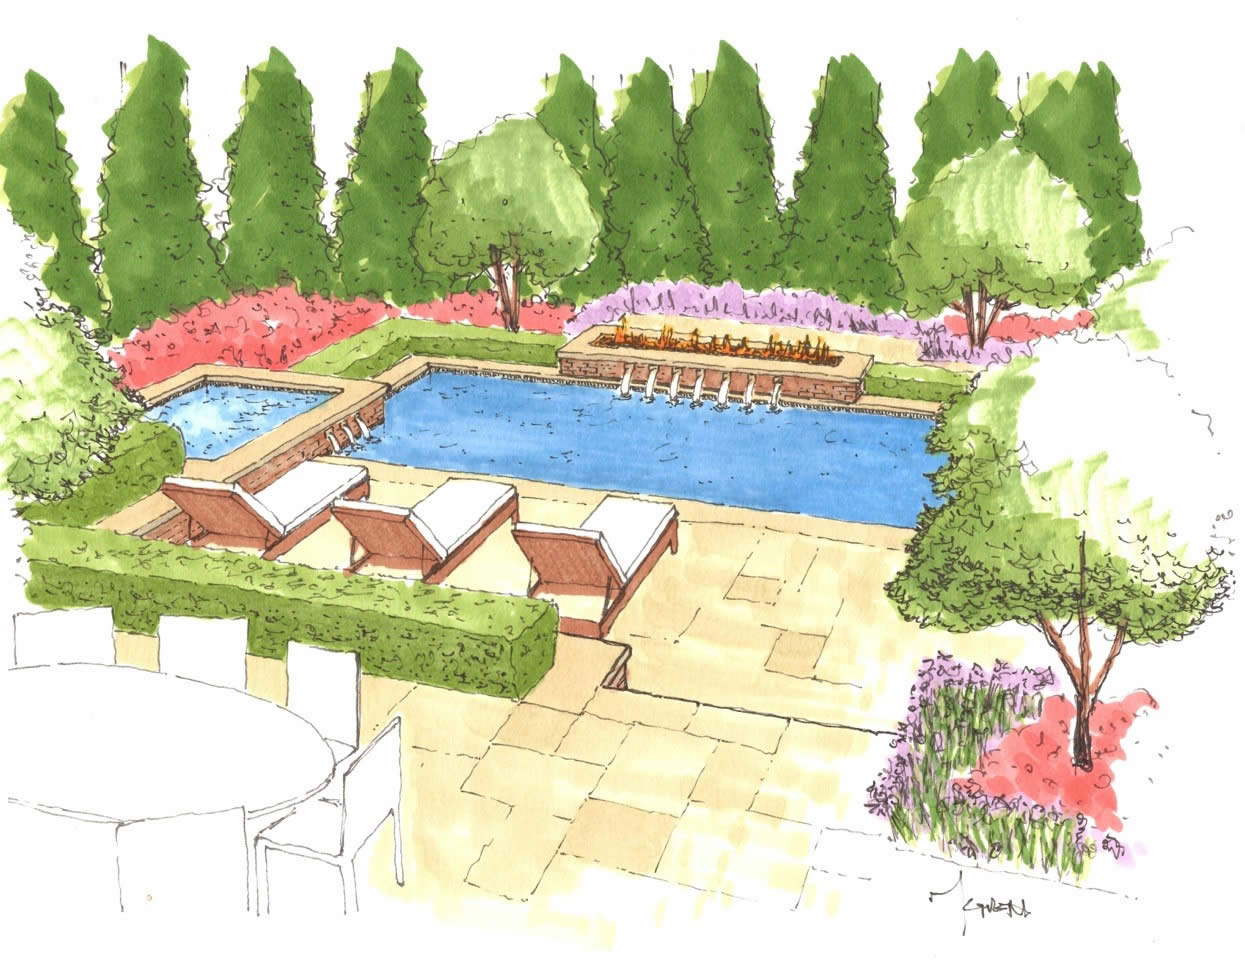 Sketch portfolio of given pool designs llc kansas city for Pool design concepts llc